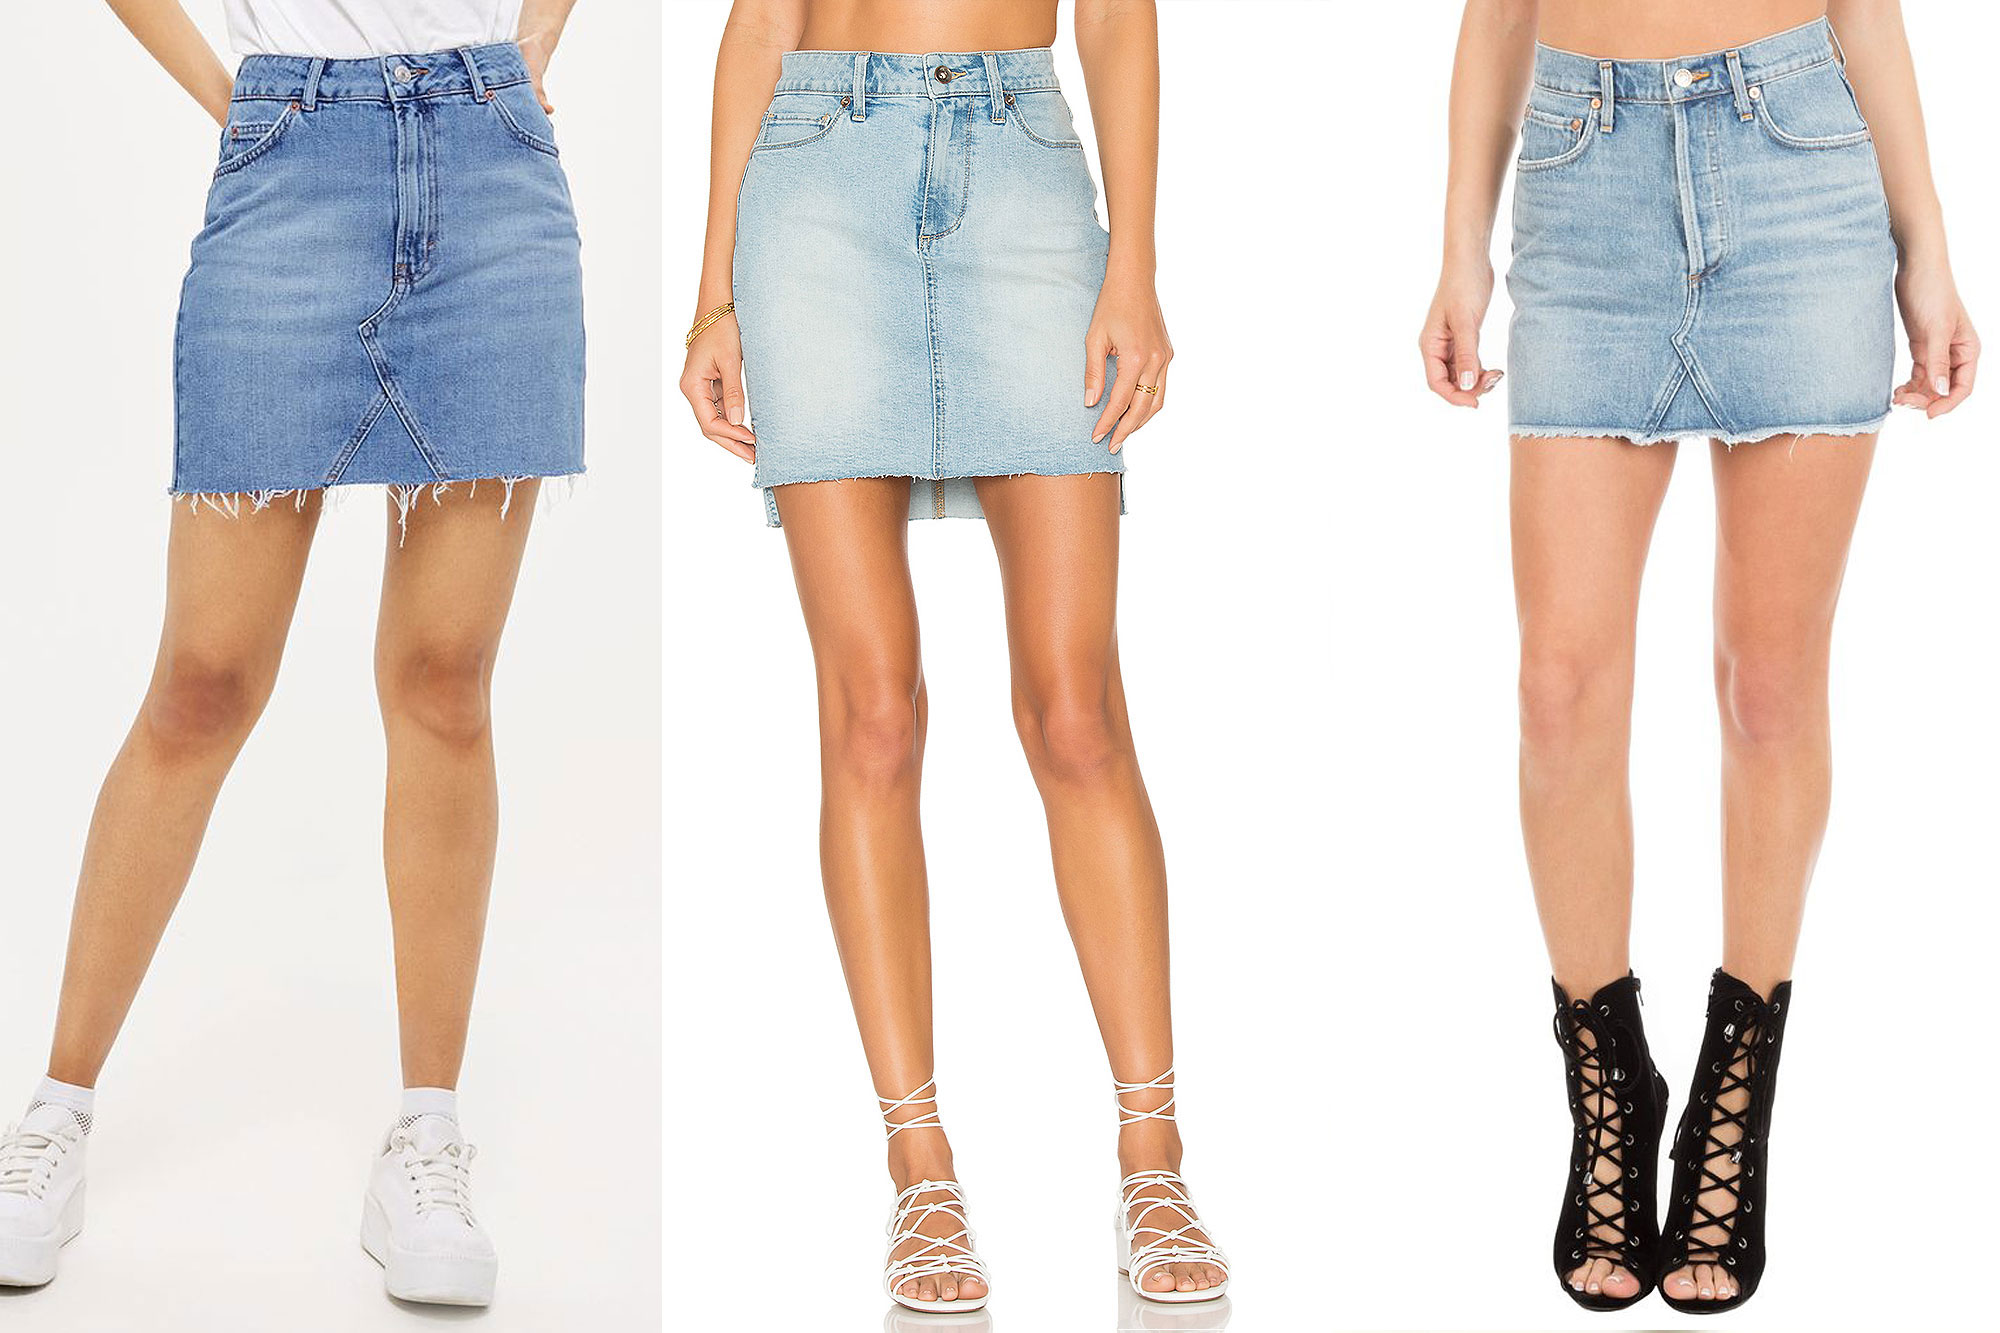 denim skirts buy it! topshop high waisted denim skirt, $55; topshop.com, paige adrian  skirt, $179; revolve.com, GGUTDAF